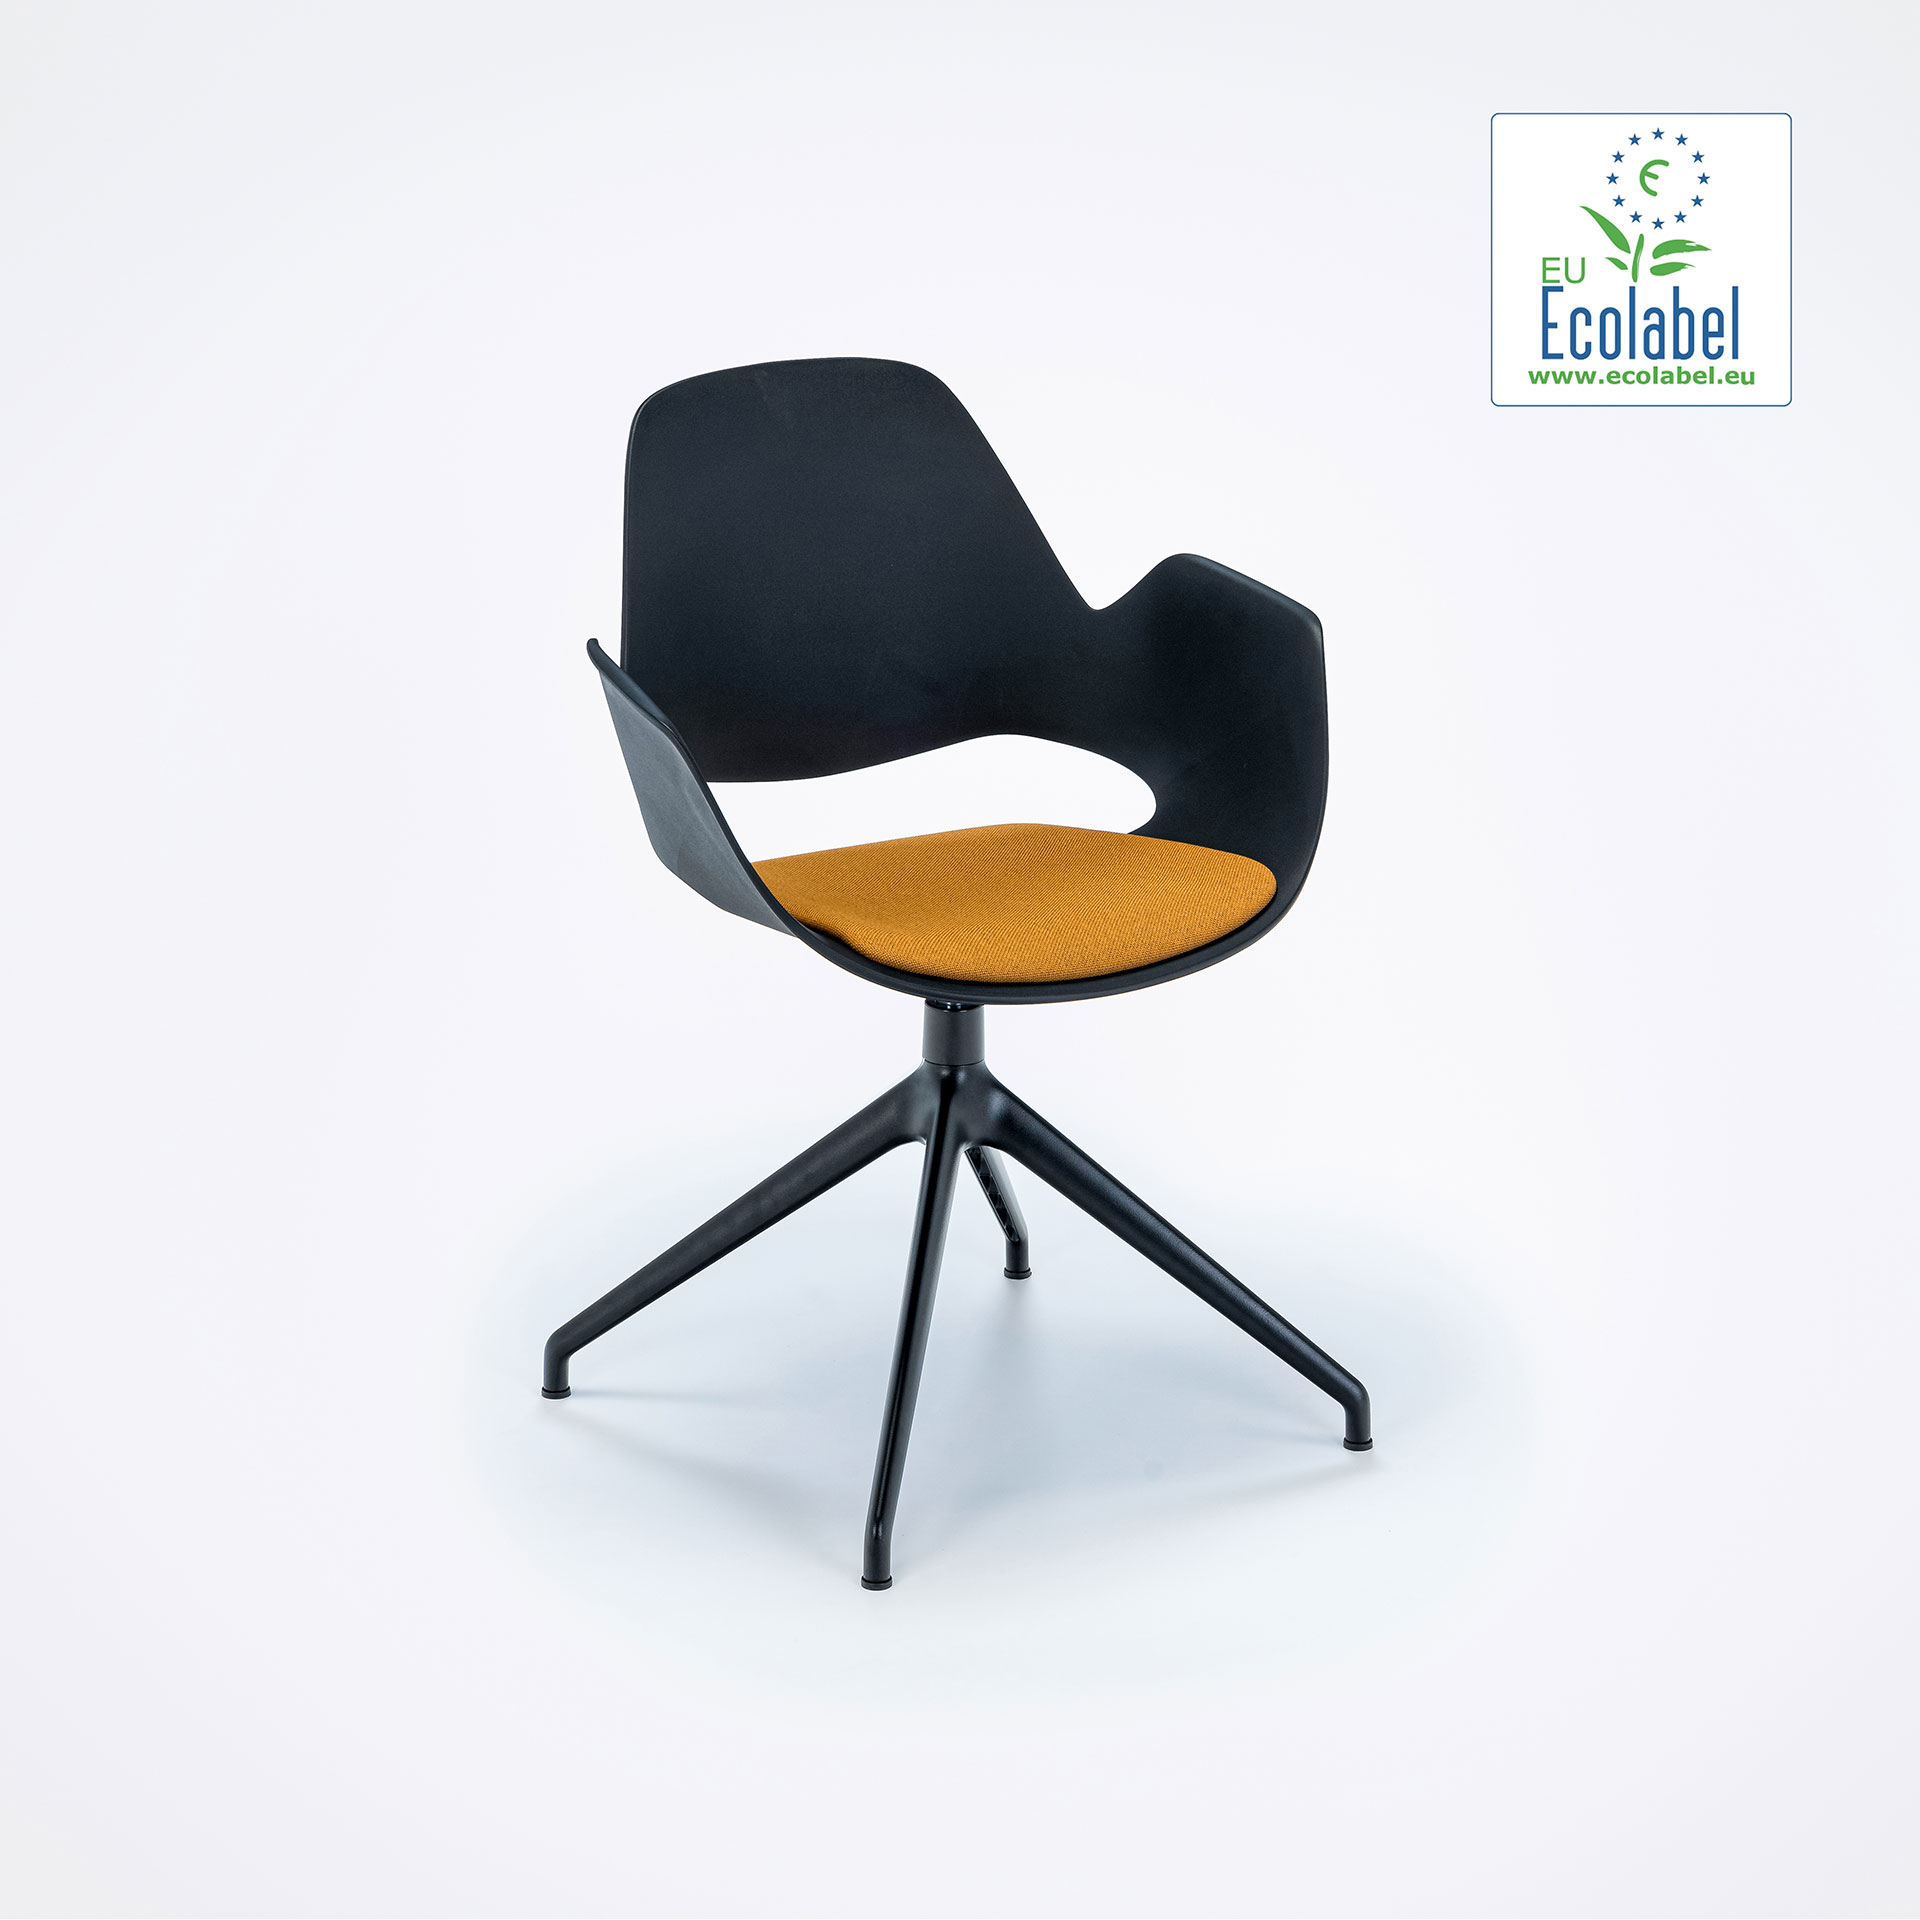 DINING ARMCHAIR // PADDED SEAT // Black/Dark yellow // 4 star swivel base